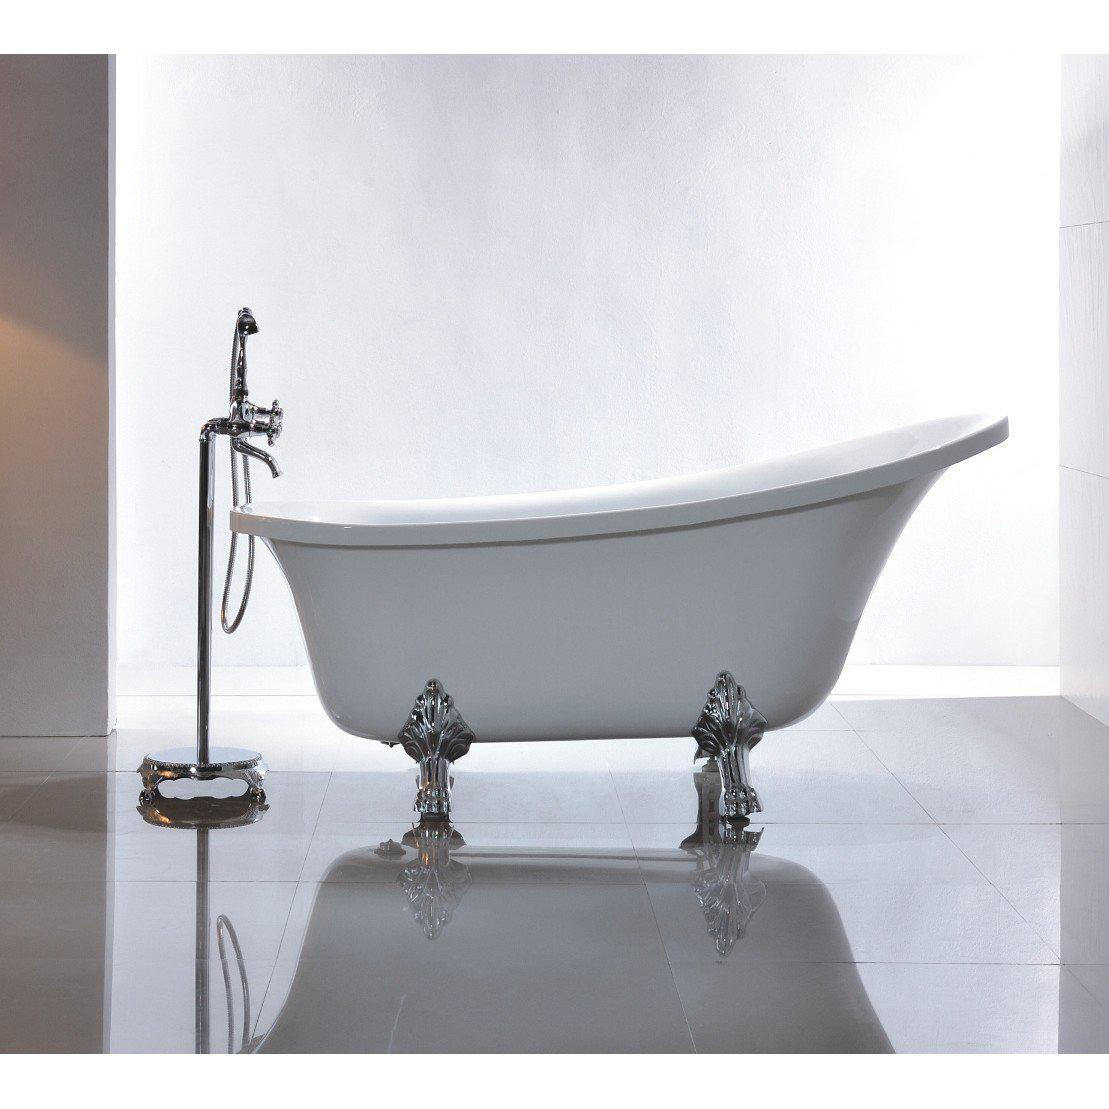 Vanity Art Freestanding White Acrylic 69-Inch Claw Foot Soaking Bathtub